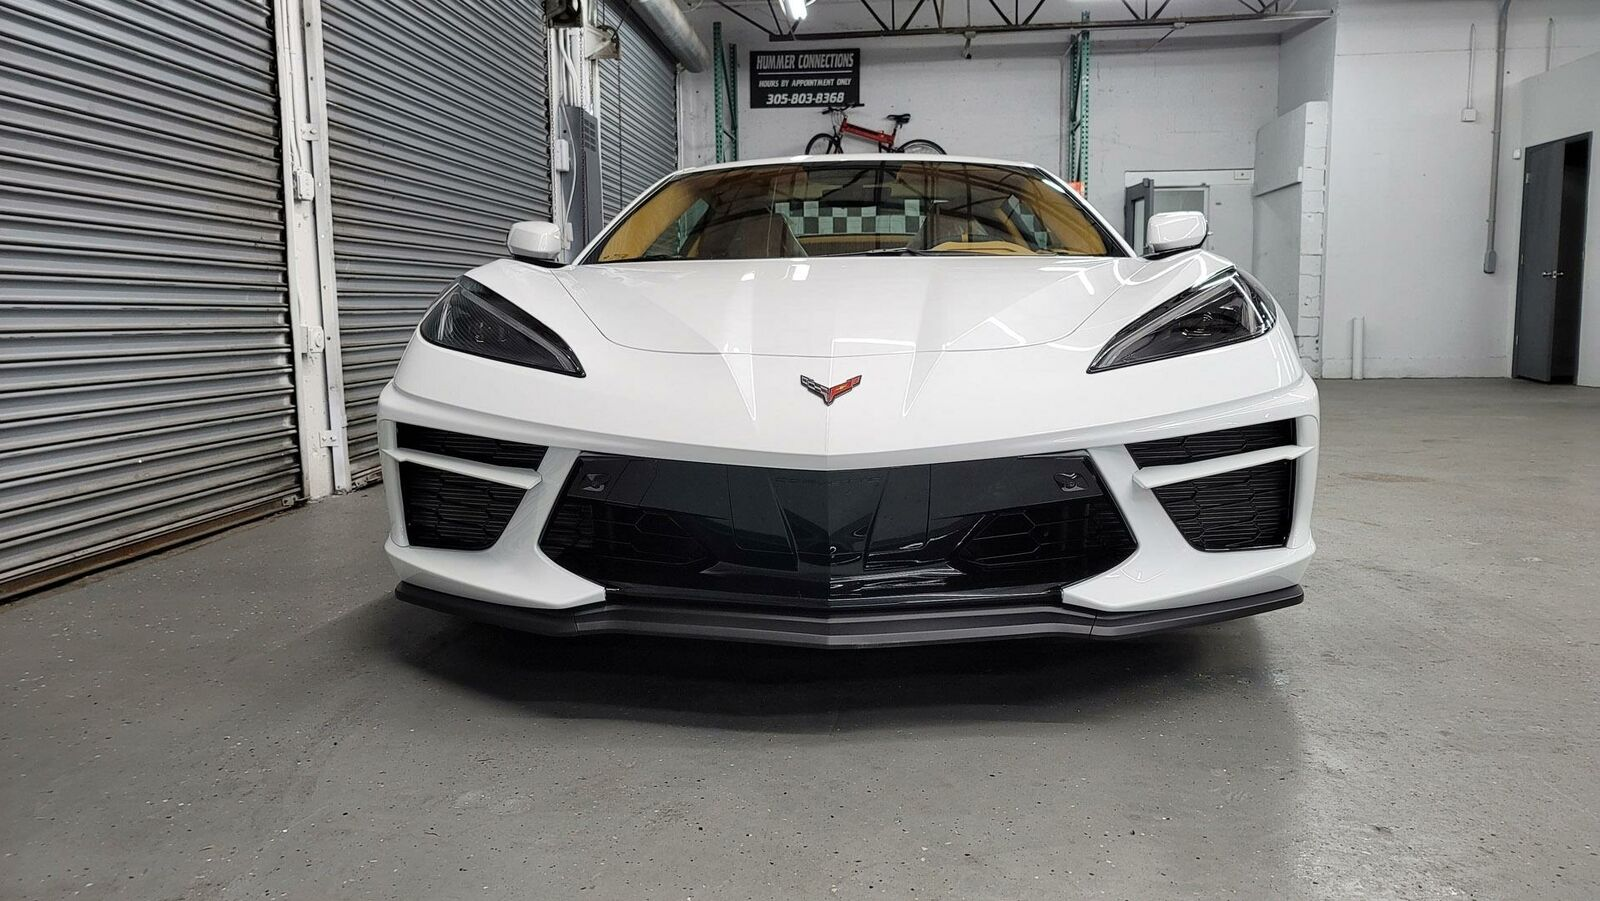 2021 White Chevrolet Corvette  3LT | C7 Corvette Photo 5